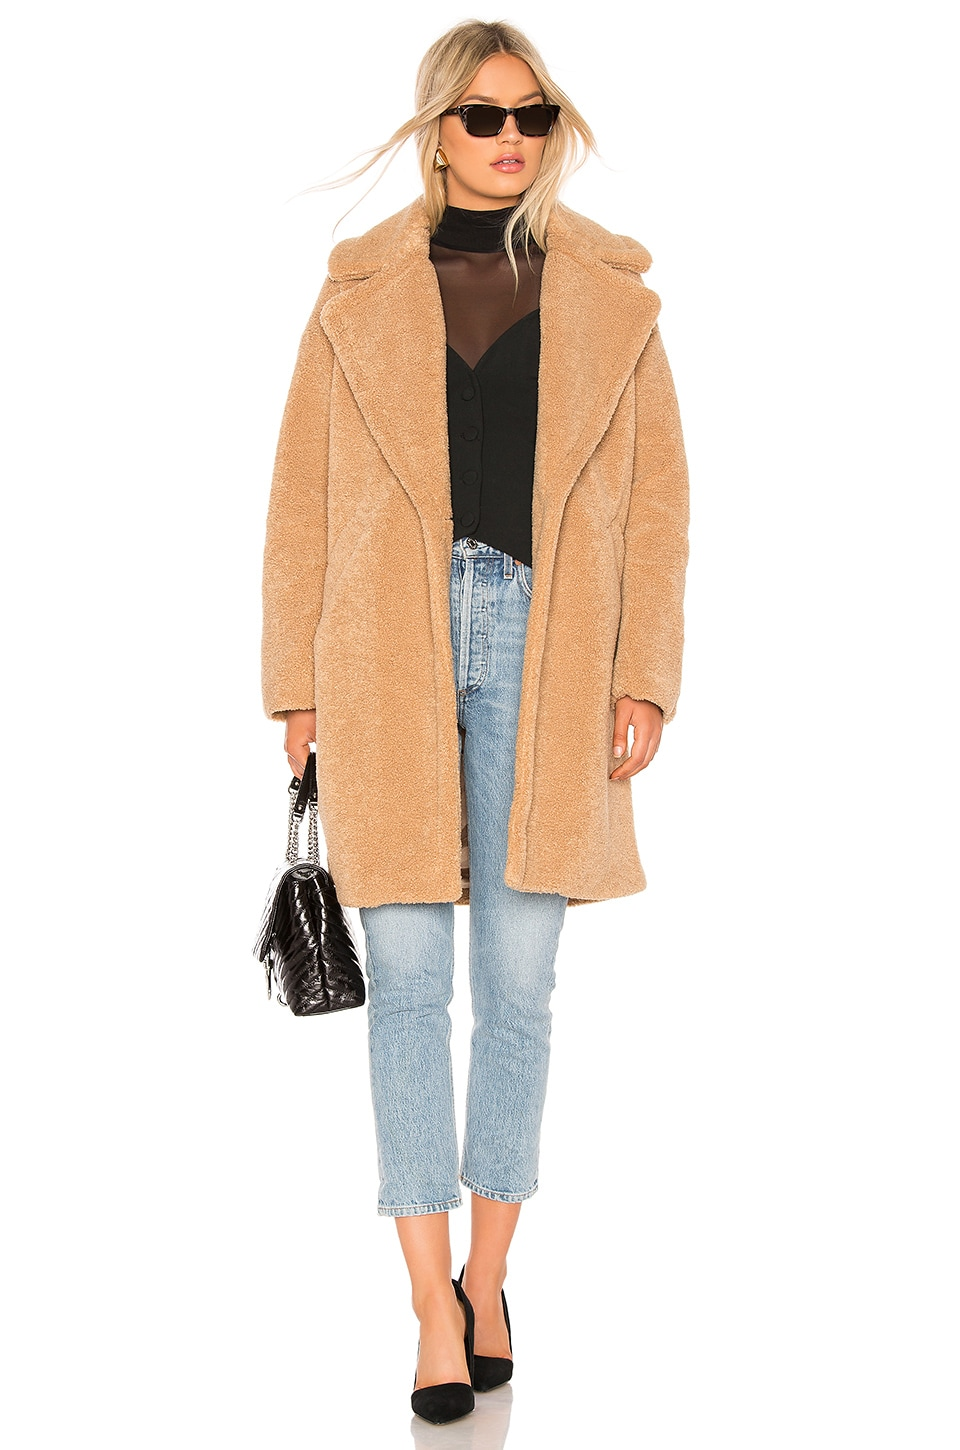 KENDALL + KYLIE Single Breasted Teddy Coat in Camel